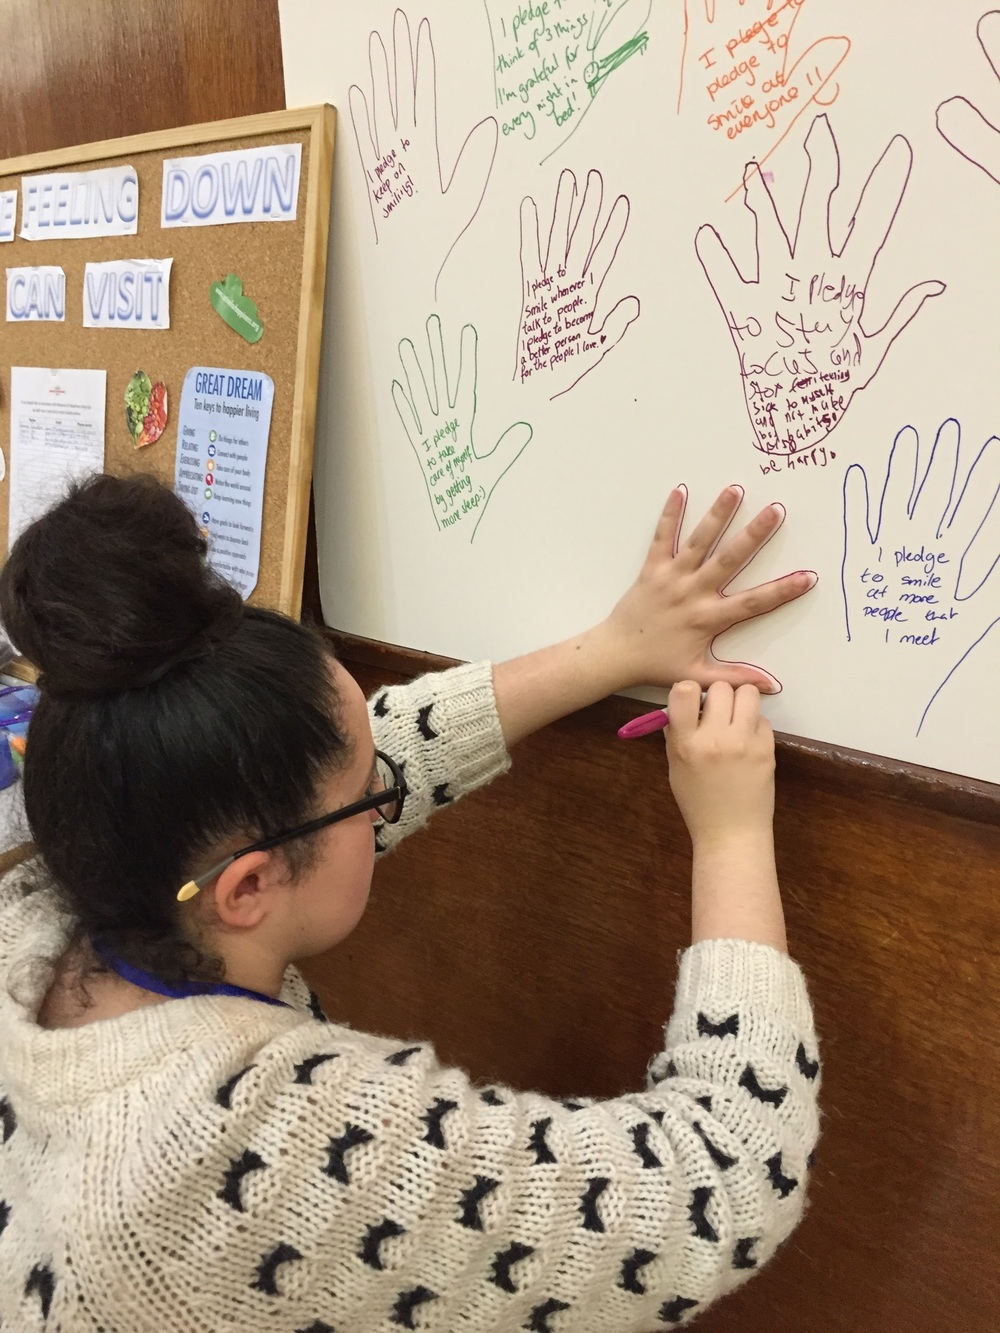 Student creating her happiness pledge - good for her!